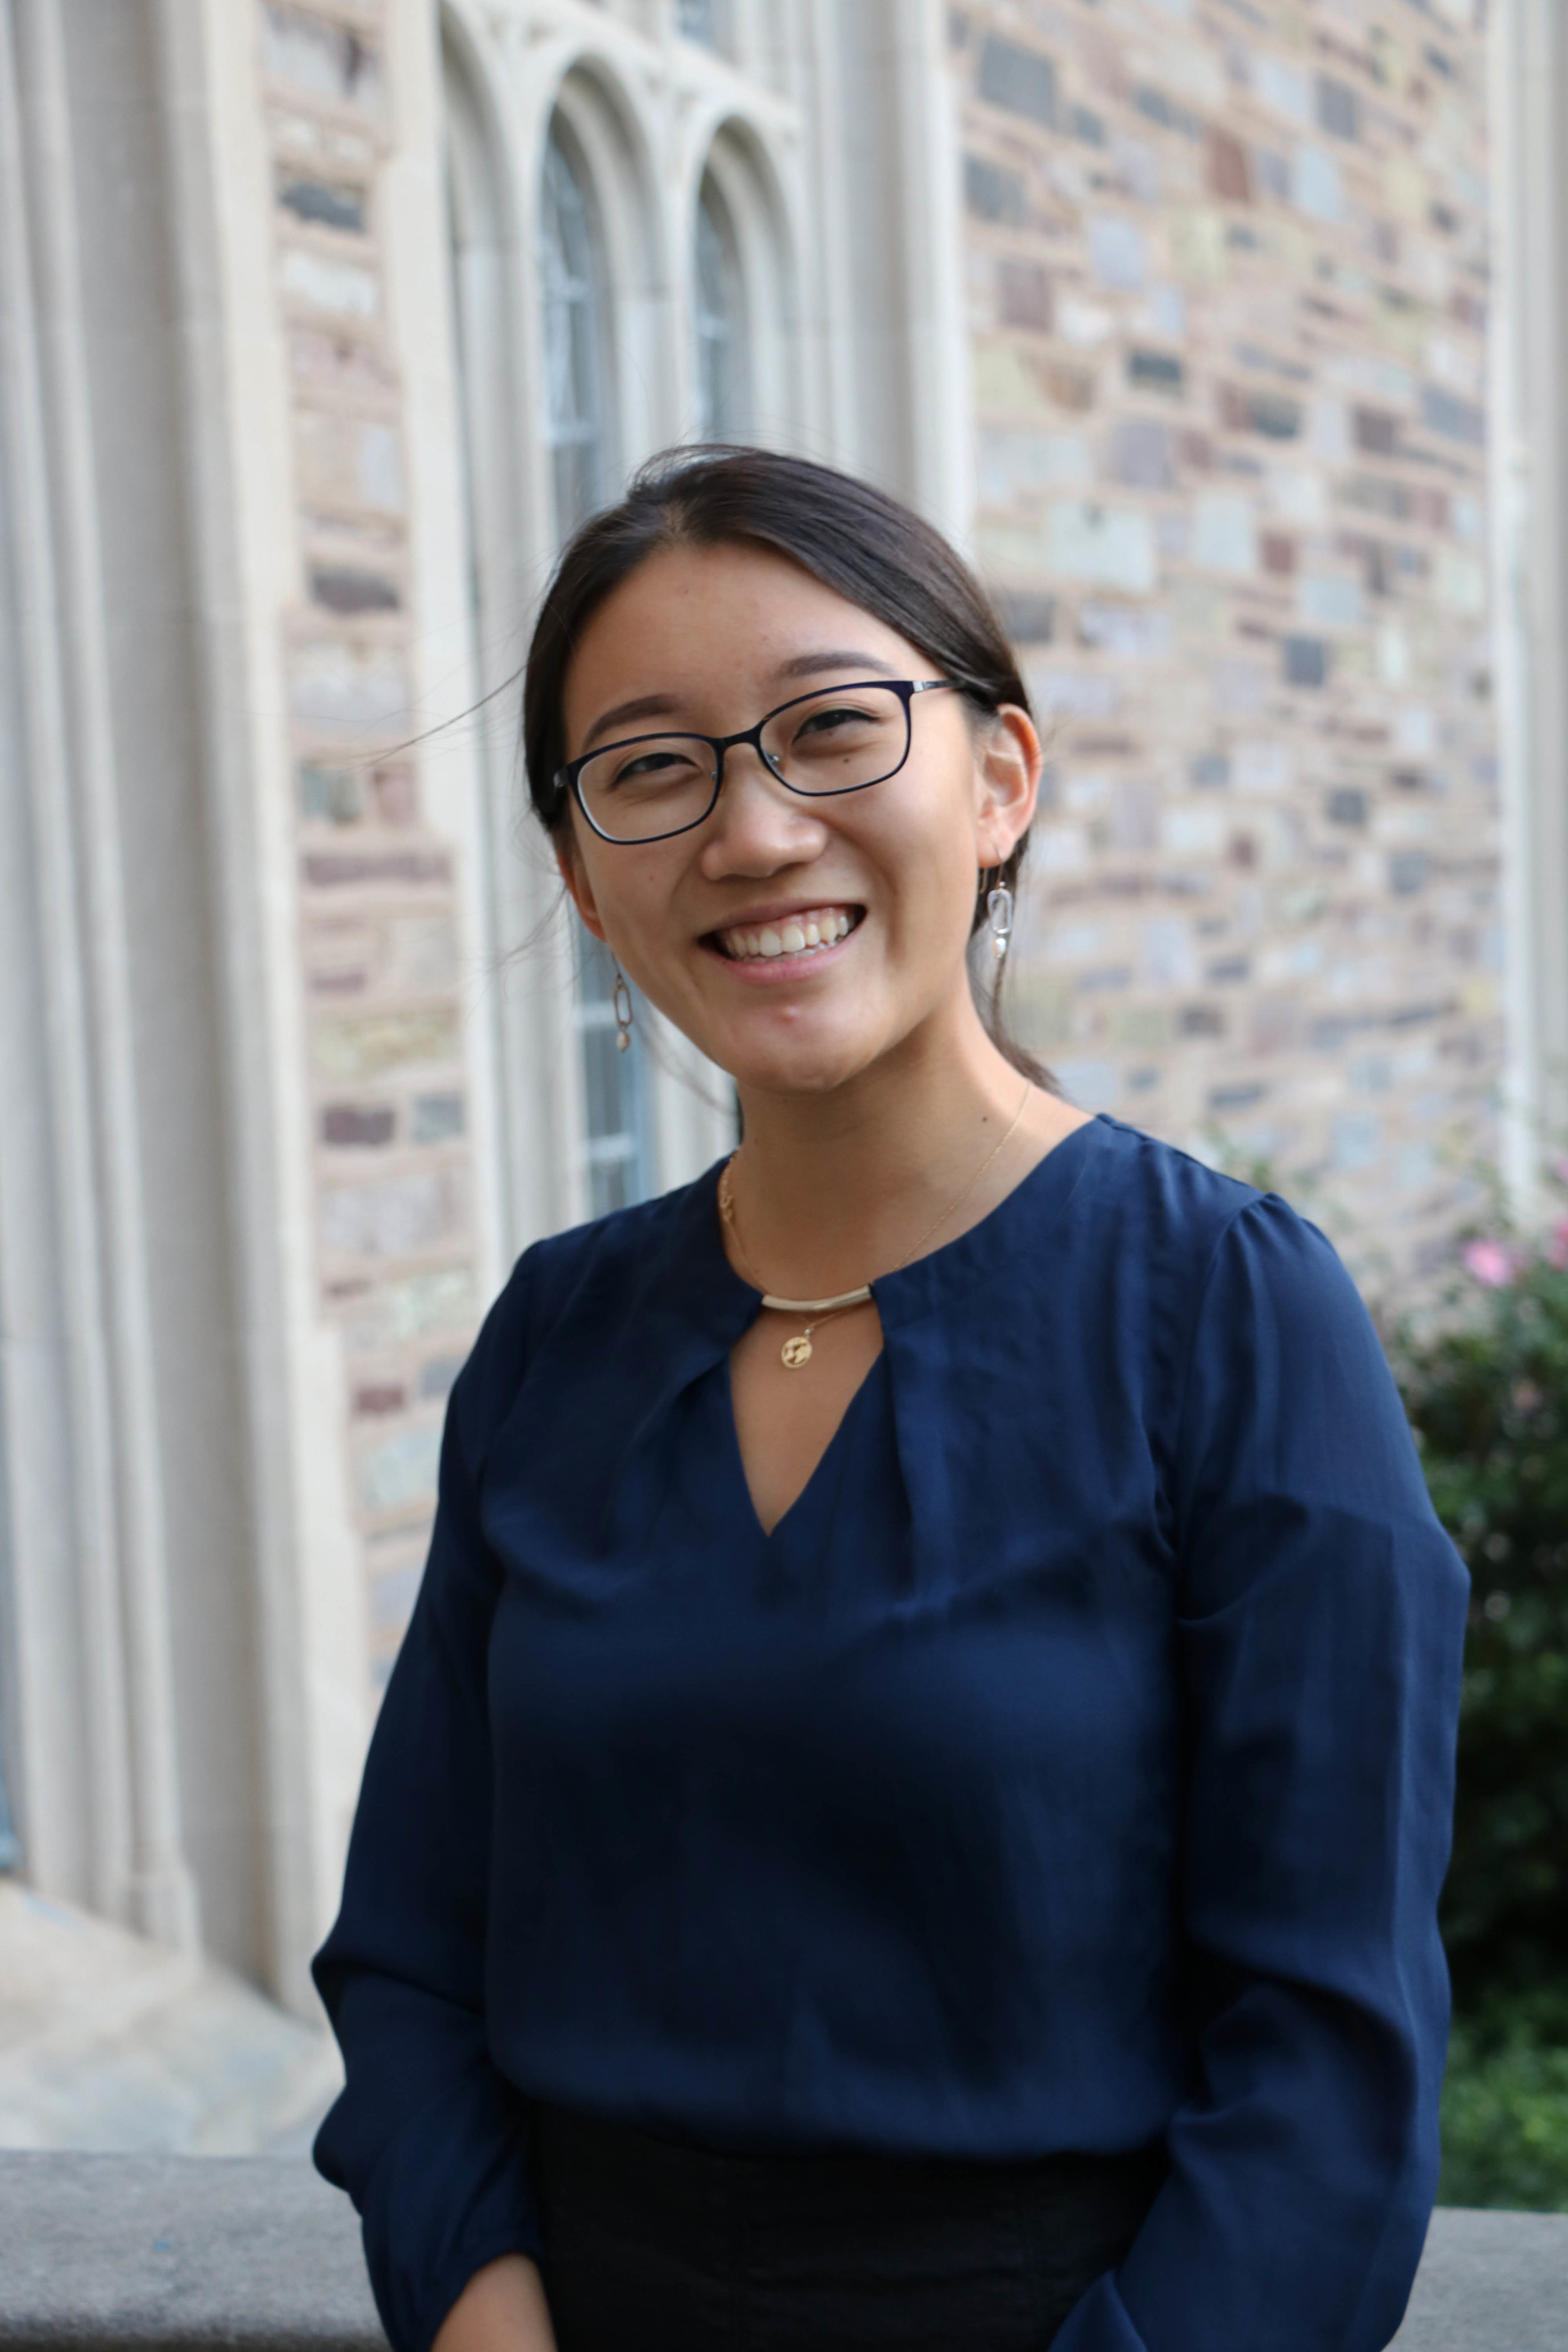 SOPHIE LI   Sophie is a sophomore from Hong Kong interested in majoring in Politics and pursuing certificates in Journalism and East Asian Studies. As a current US university student with Chinese roots, she is fascinated by the intersections of culture and history with current US-China affairs. Sophie's academic interests include human rights, China studies, international relations, and conflict prevention. On campus, she is also involved with the Princeton Re-entry and Employment Program, Community House, the CONTACT Crisis and Suicide Prevention Hotline, and the Princeton Debate Panel.